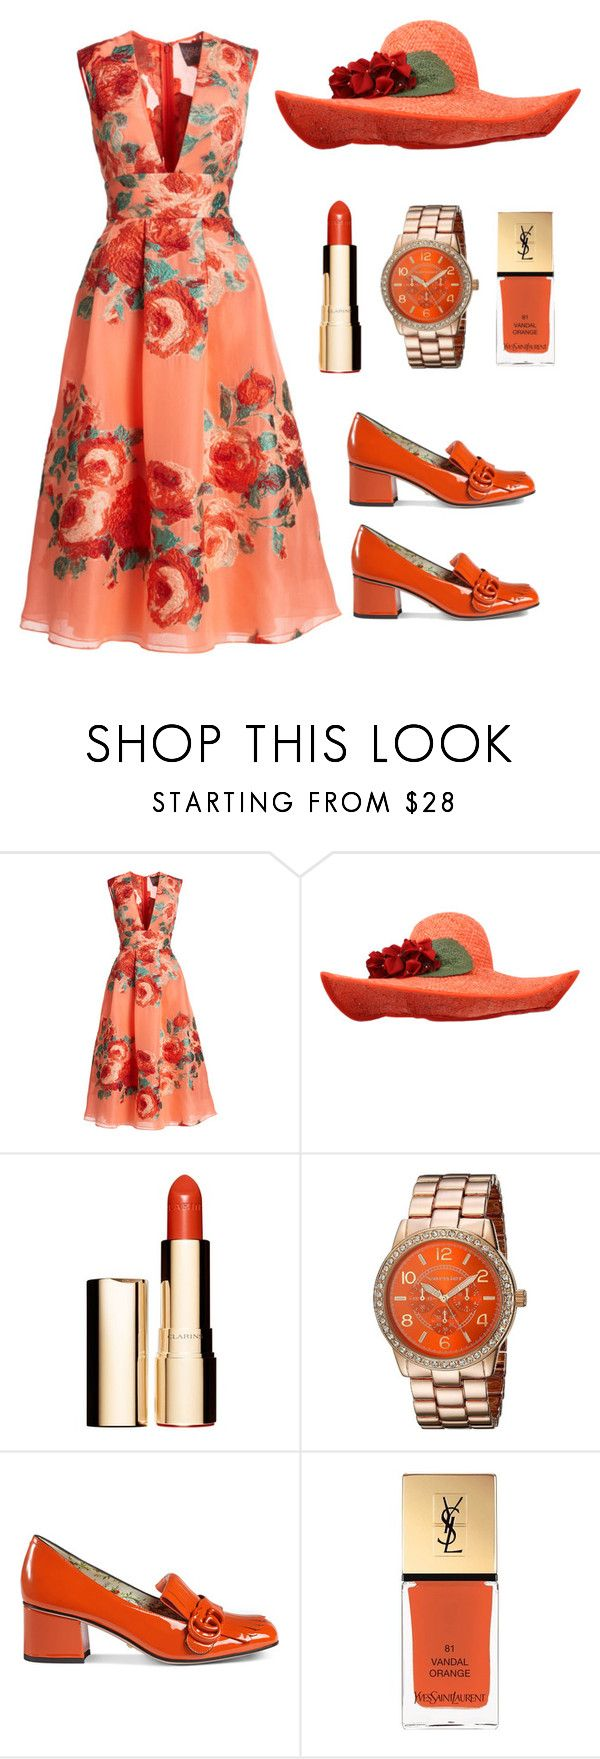 """""""Sunday best in orange"""" by im-karla-with-a-k ❤ liked on Polyvore featuring Lela Rose, Banjanan, Clarins, Vernier, Gucci and Yves Saint Laurent"""